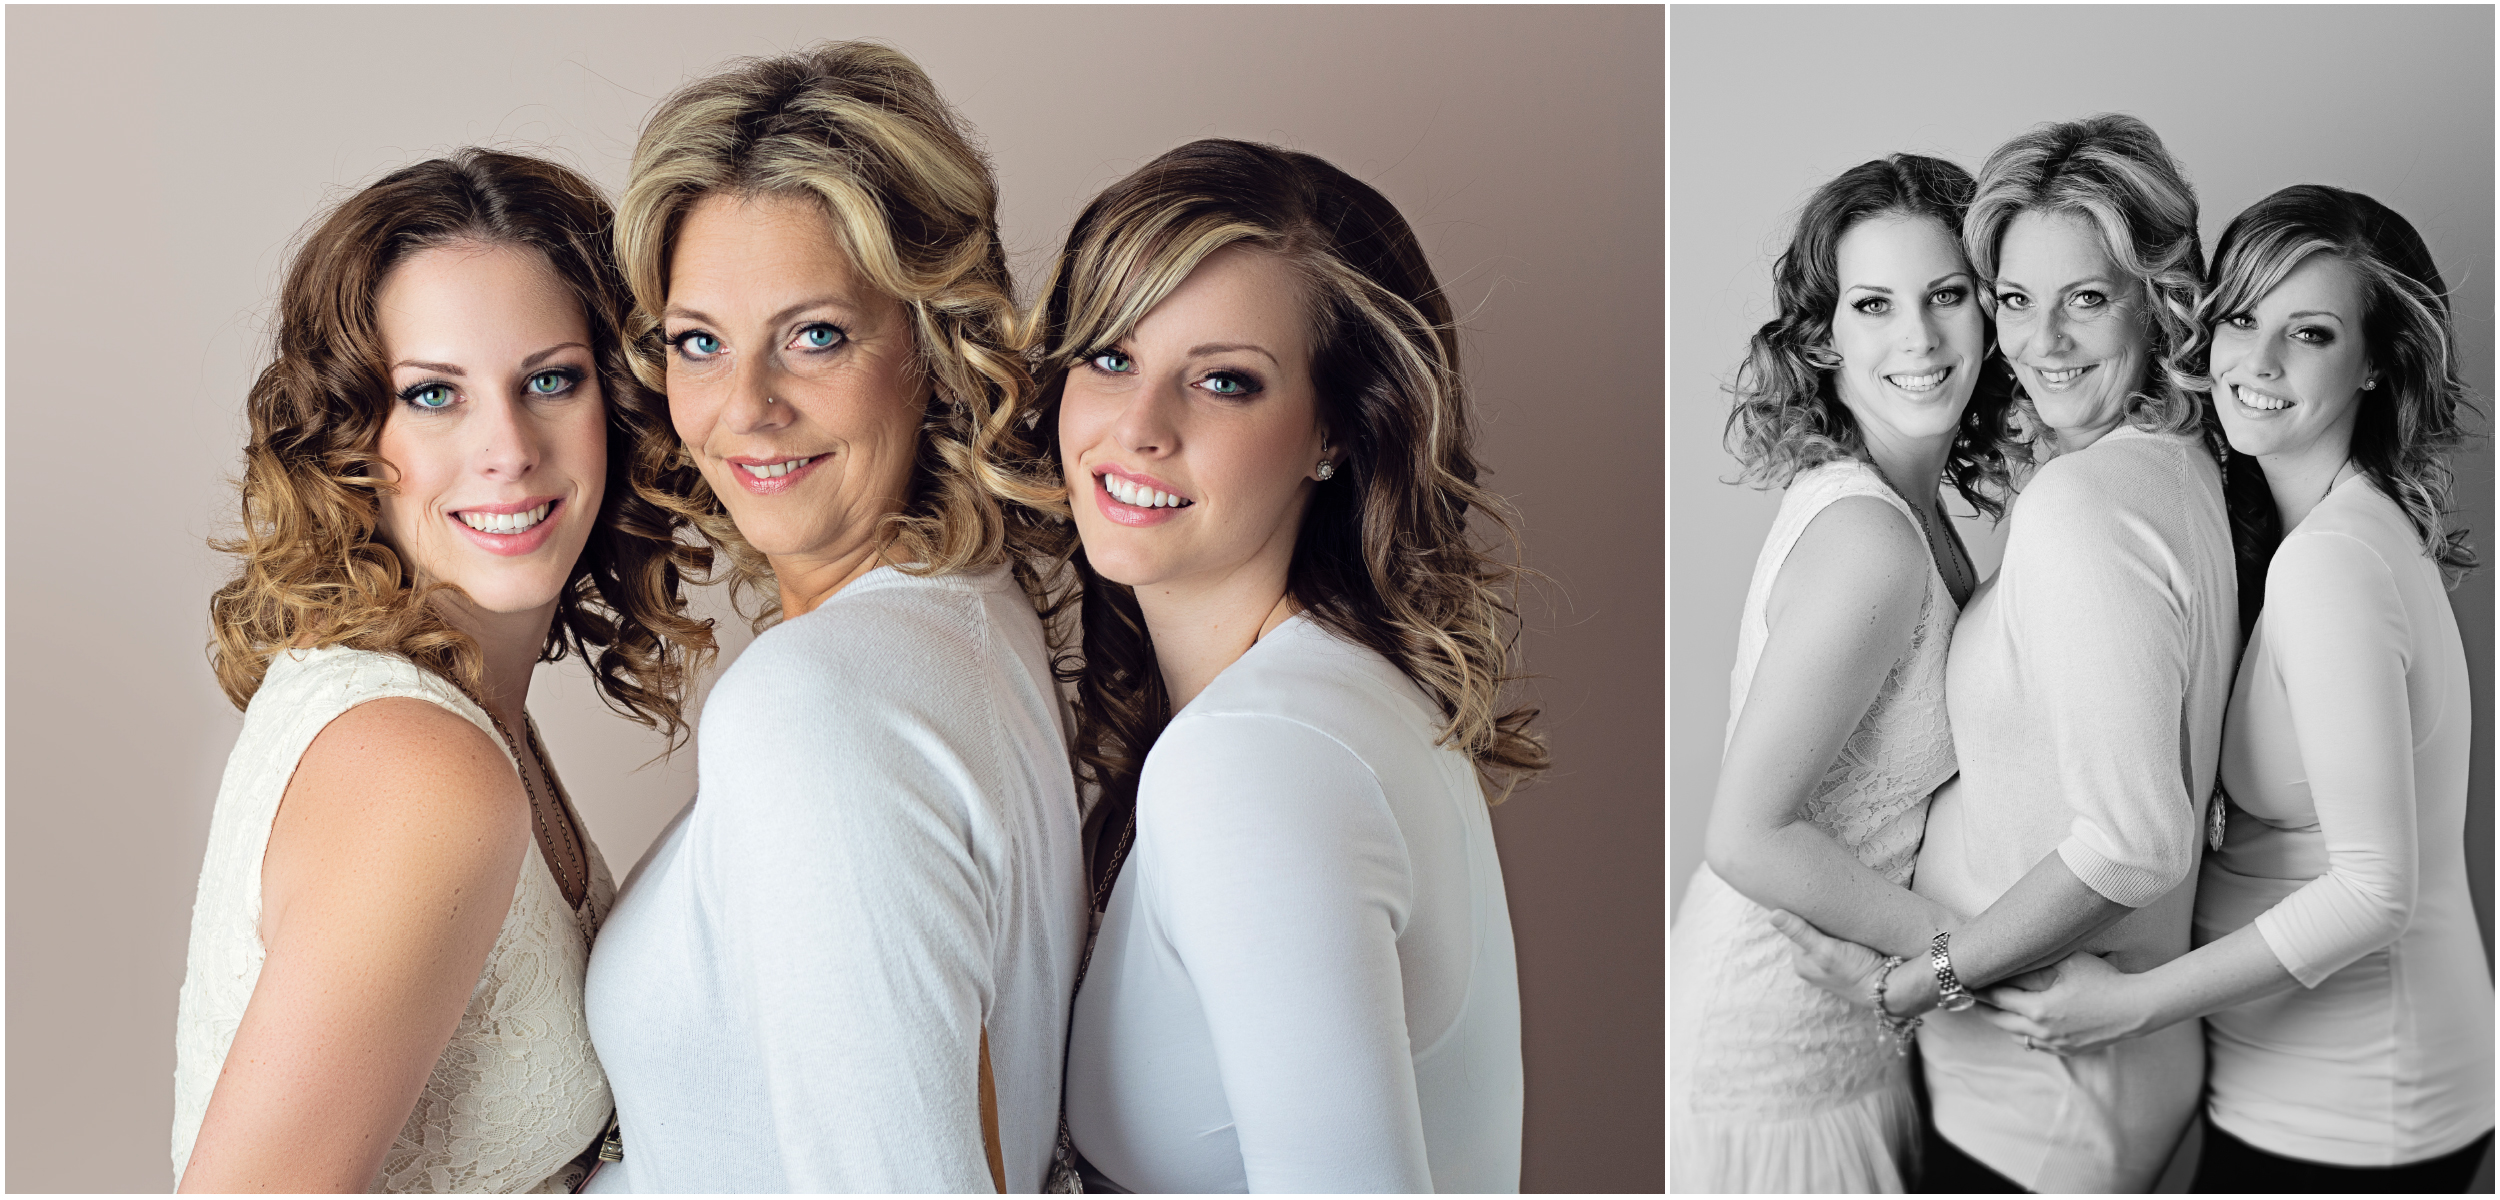 Portrait Photography by Friday Design + Photography